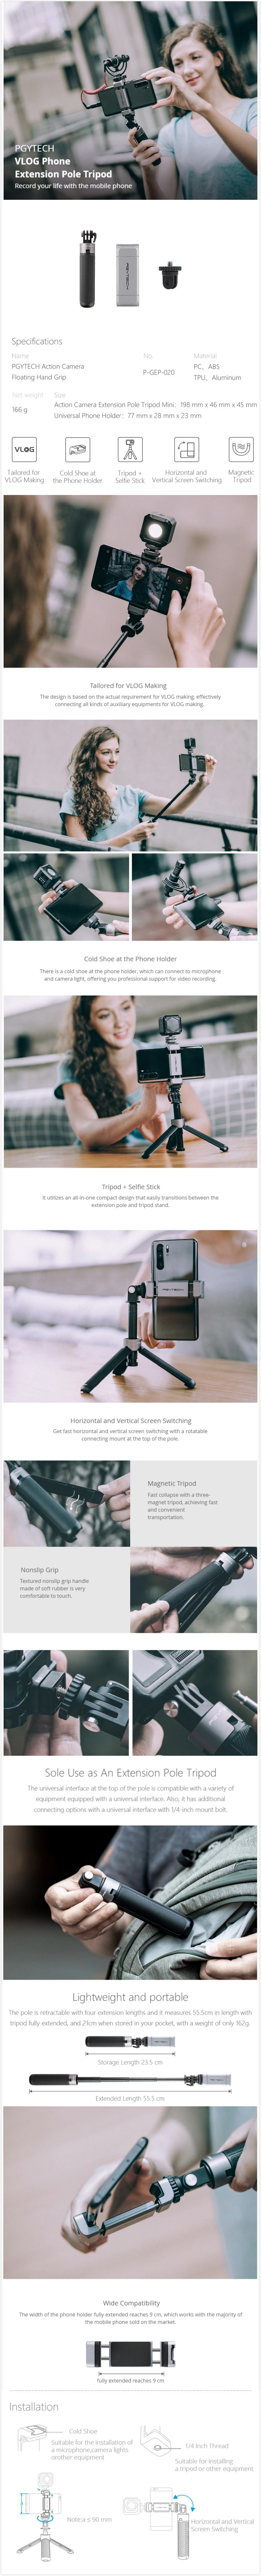 PGYTECH VLOG Phone Extension Pole Tripod Mini Floating Hand Grip For DJI OSMO Action FPV Camera